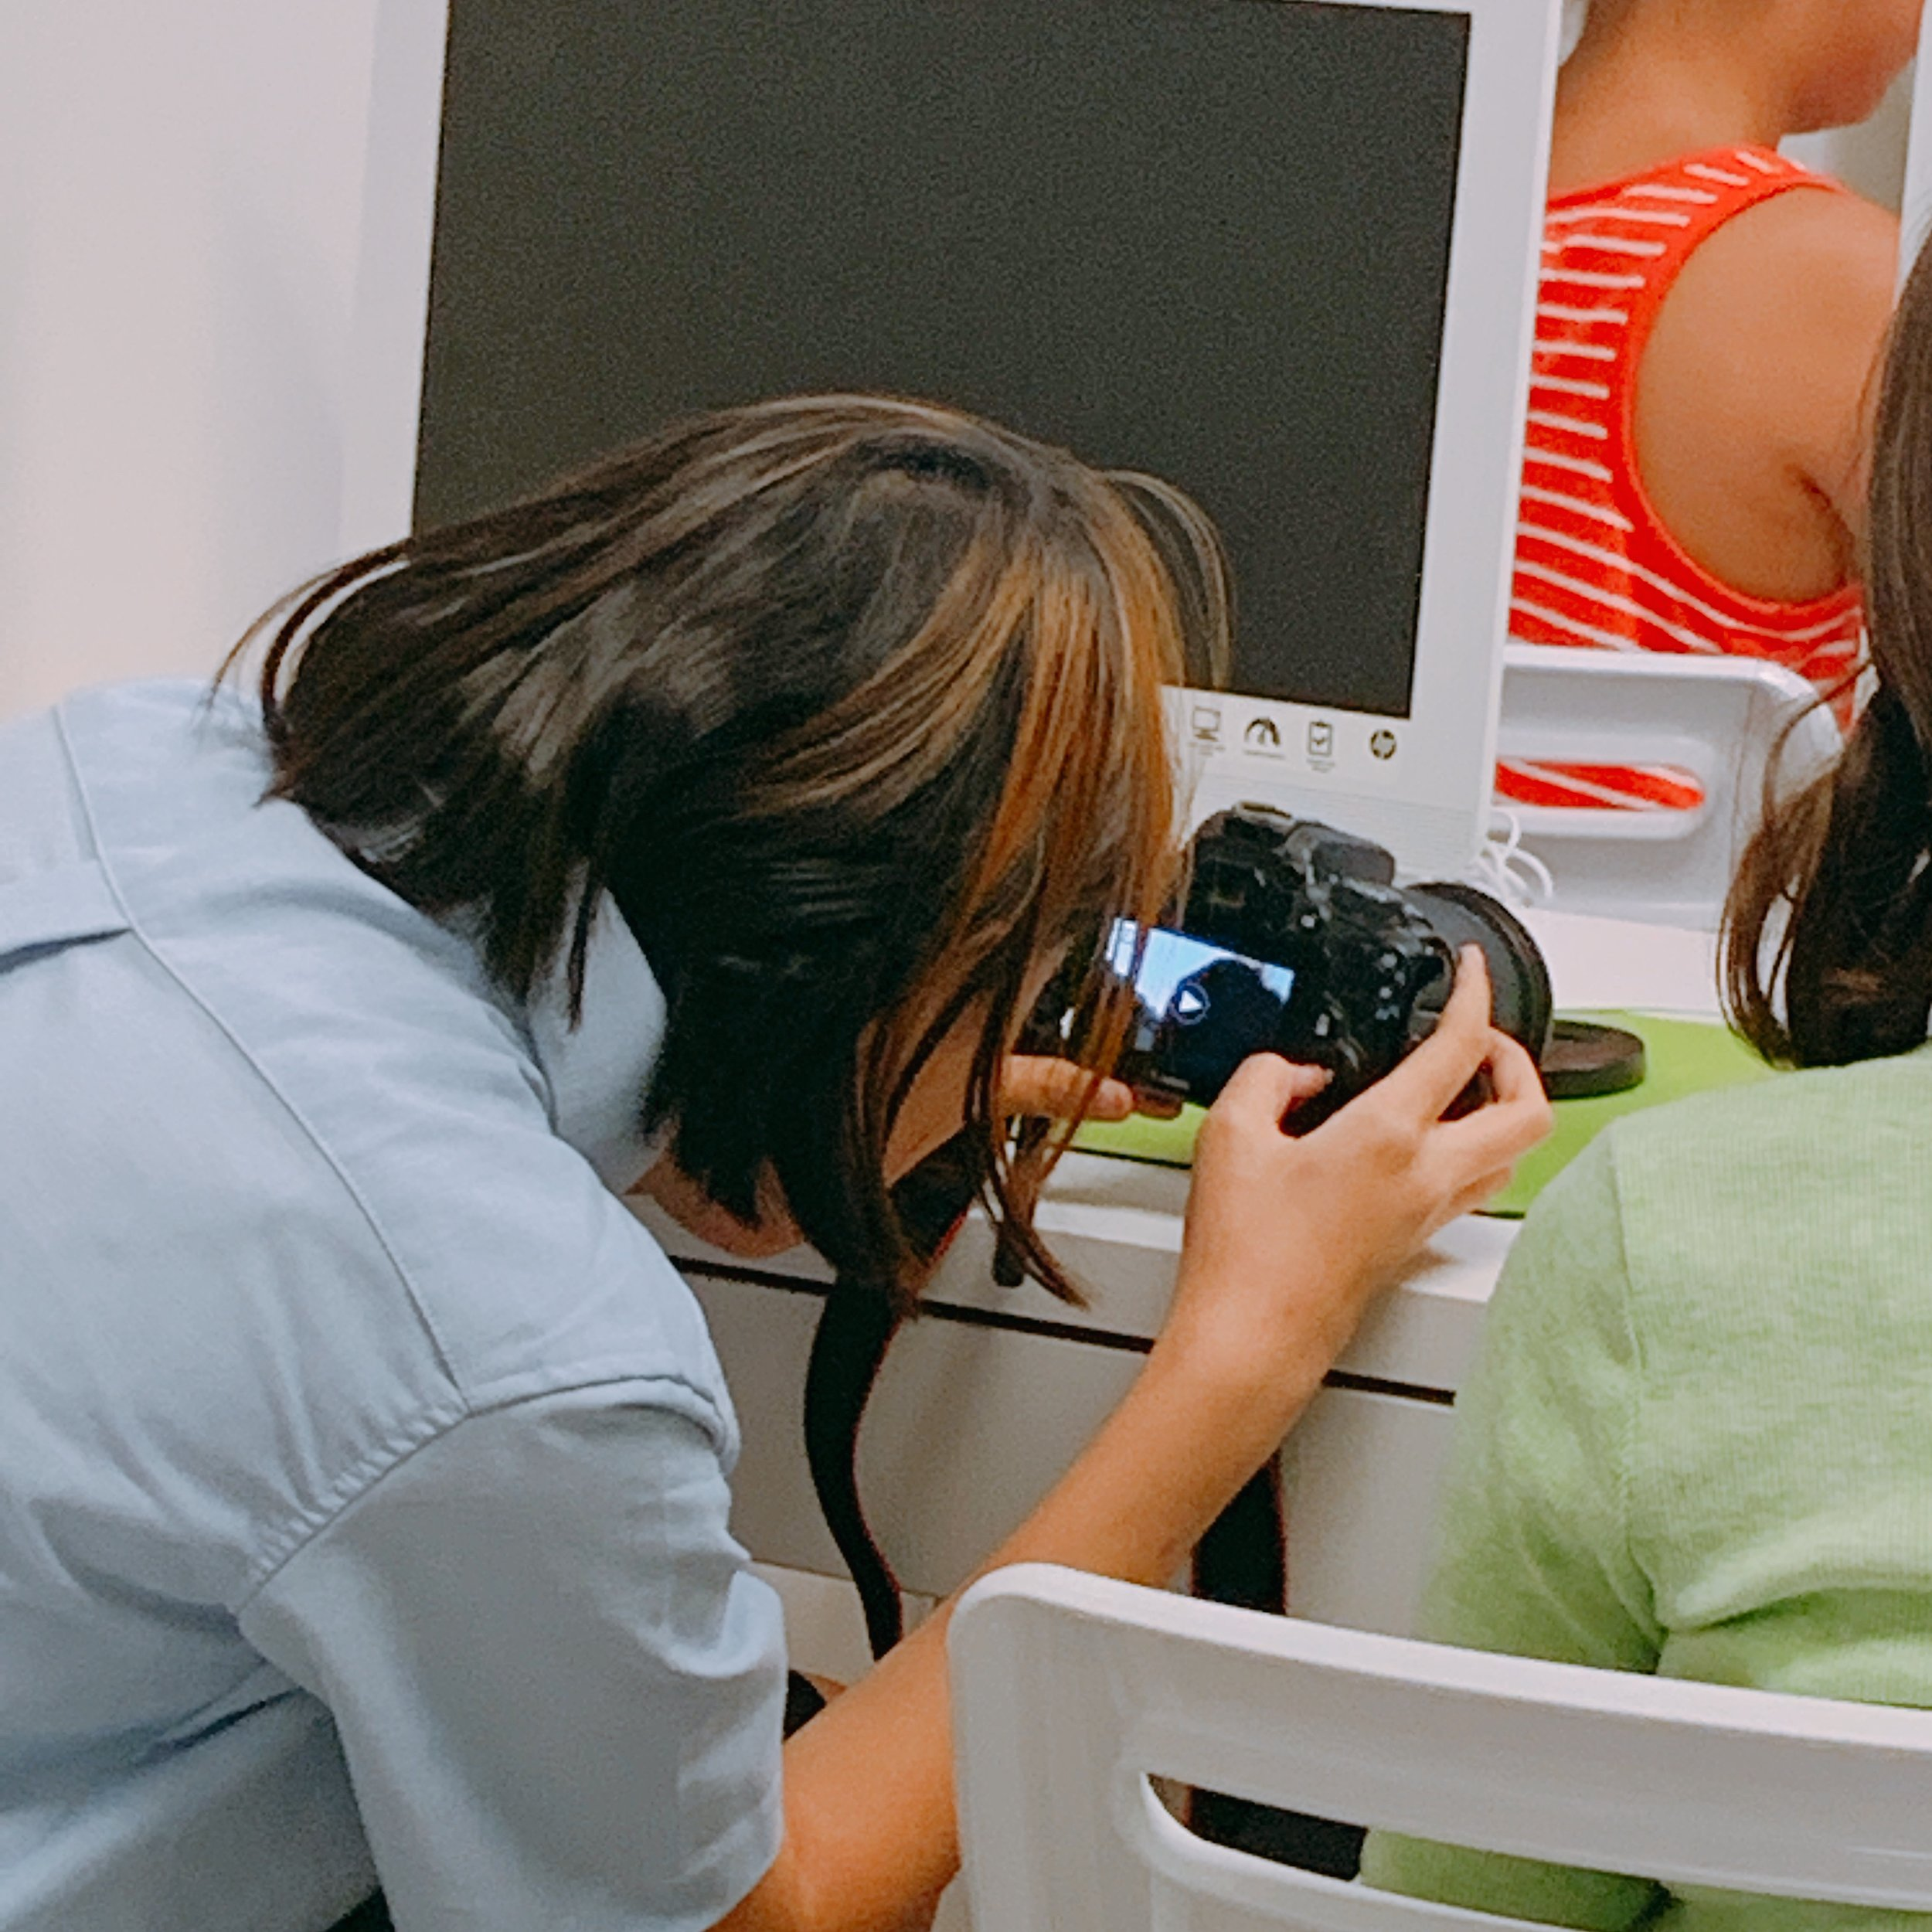 PHOTOGRAPHY CLASS - Intro course to photography where students will learn basics of point and shoot camera and will be learning the basic mechanics of a digital camera and test out our skills both in the studio setting and outdoors.